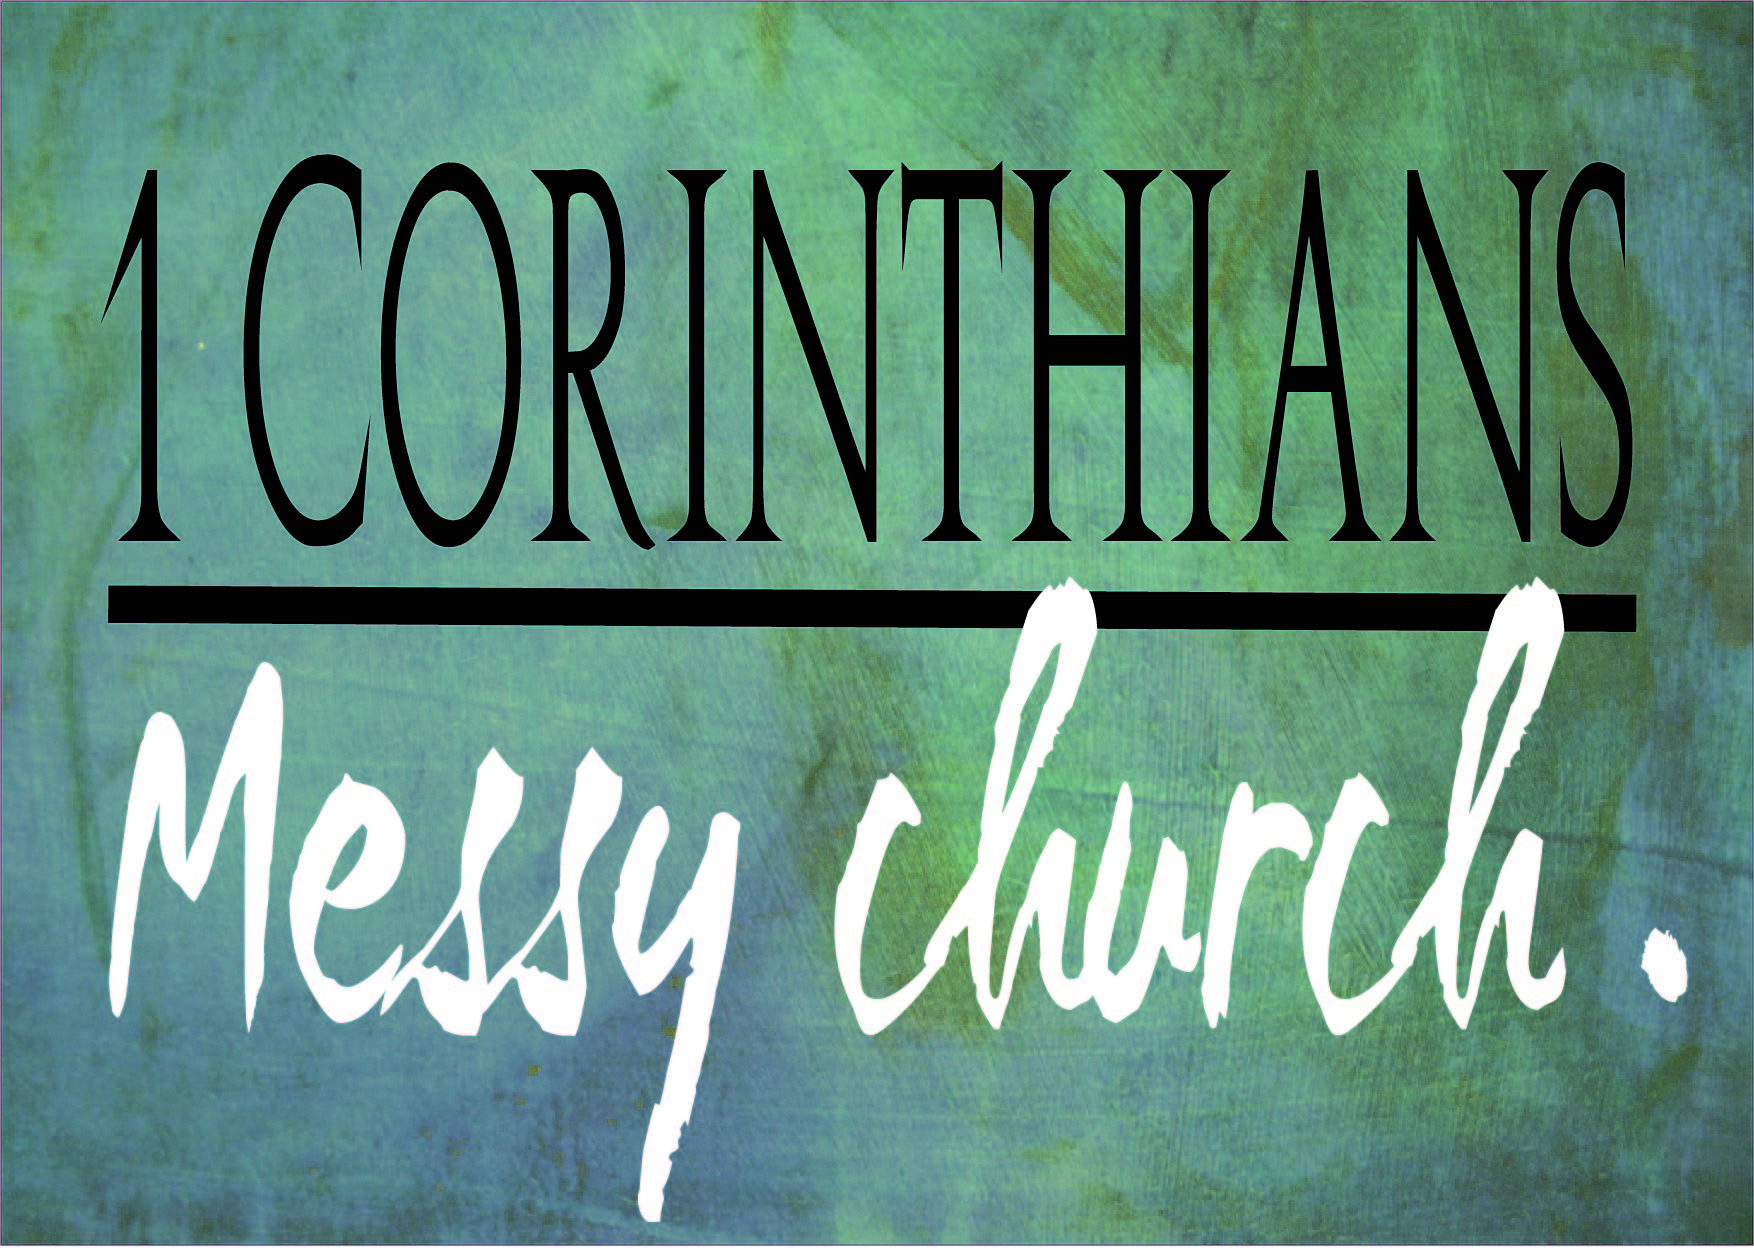 1 Corinthians: Messy Church